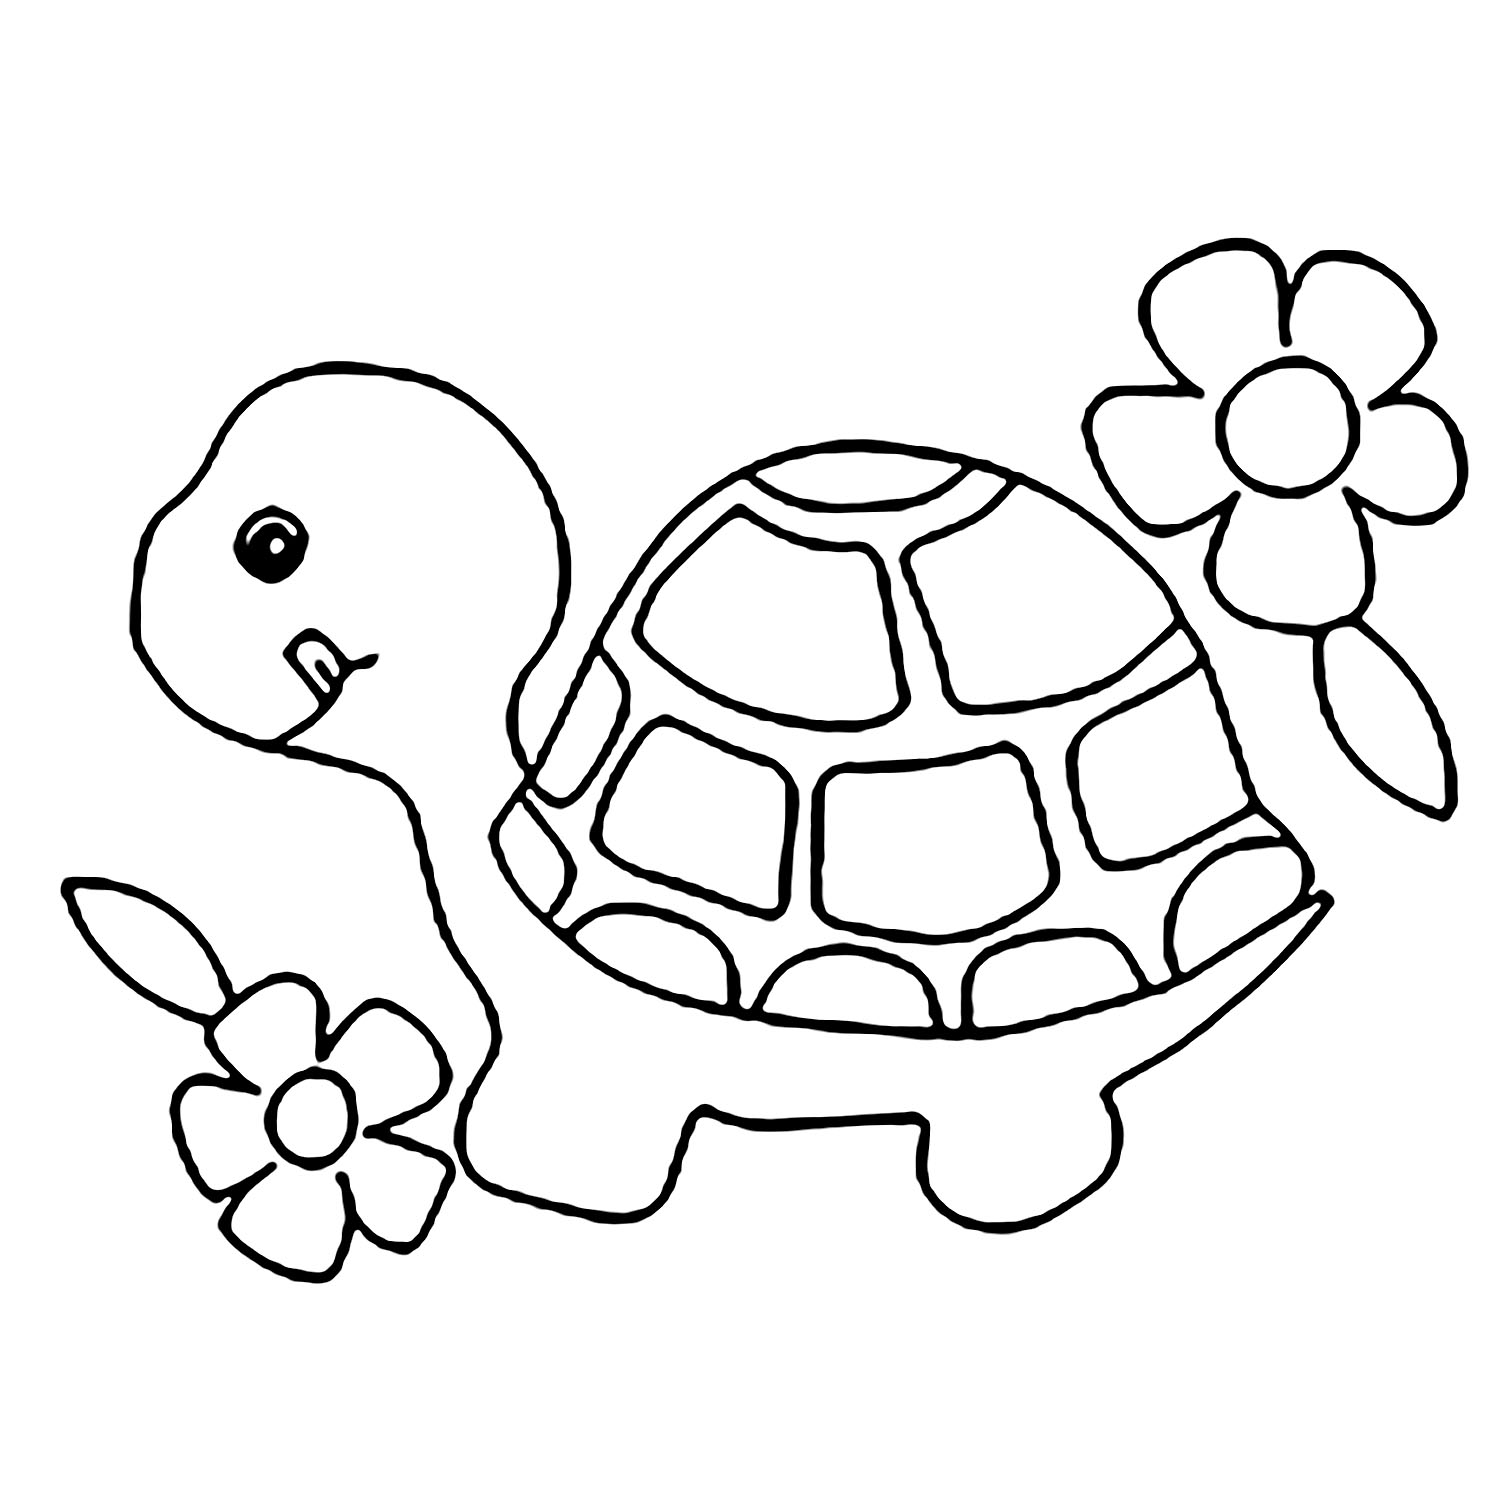 turtle coloring pictures turtles coloring pages download and print turtles coloring pictures turtle